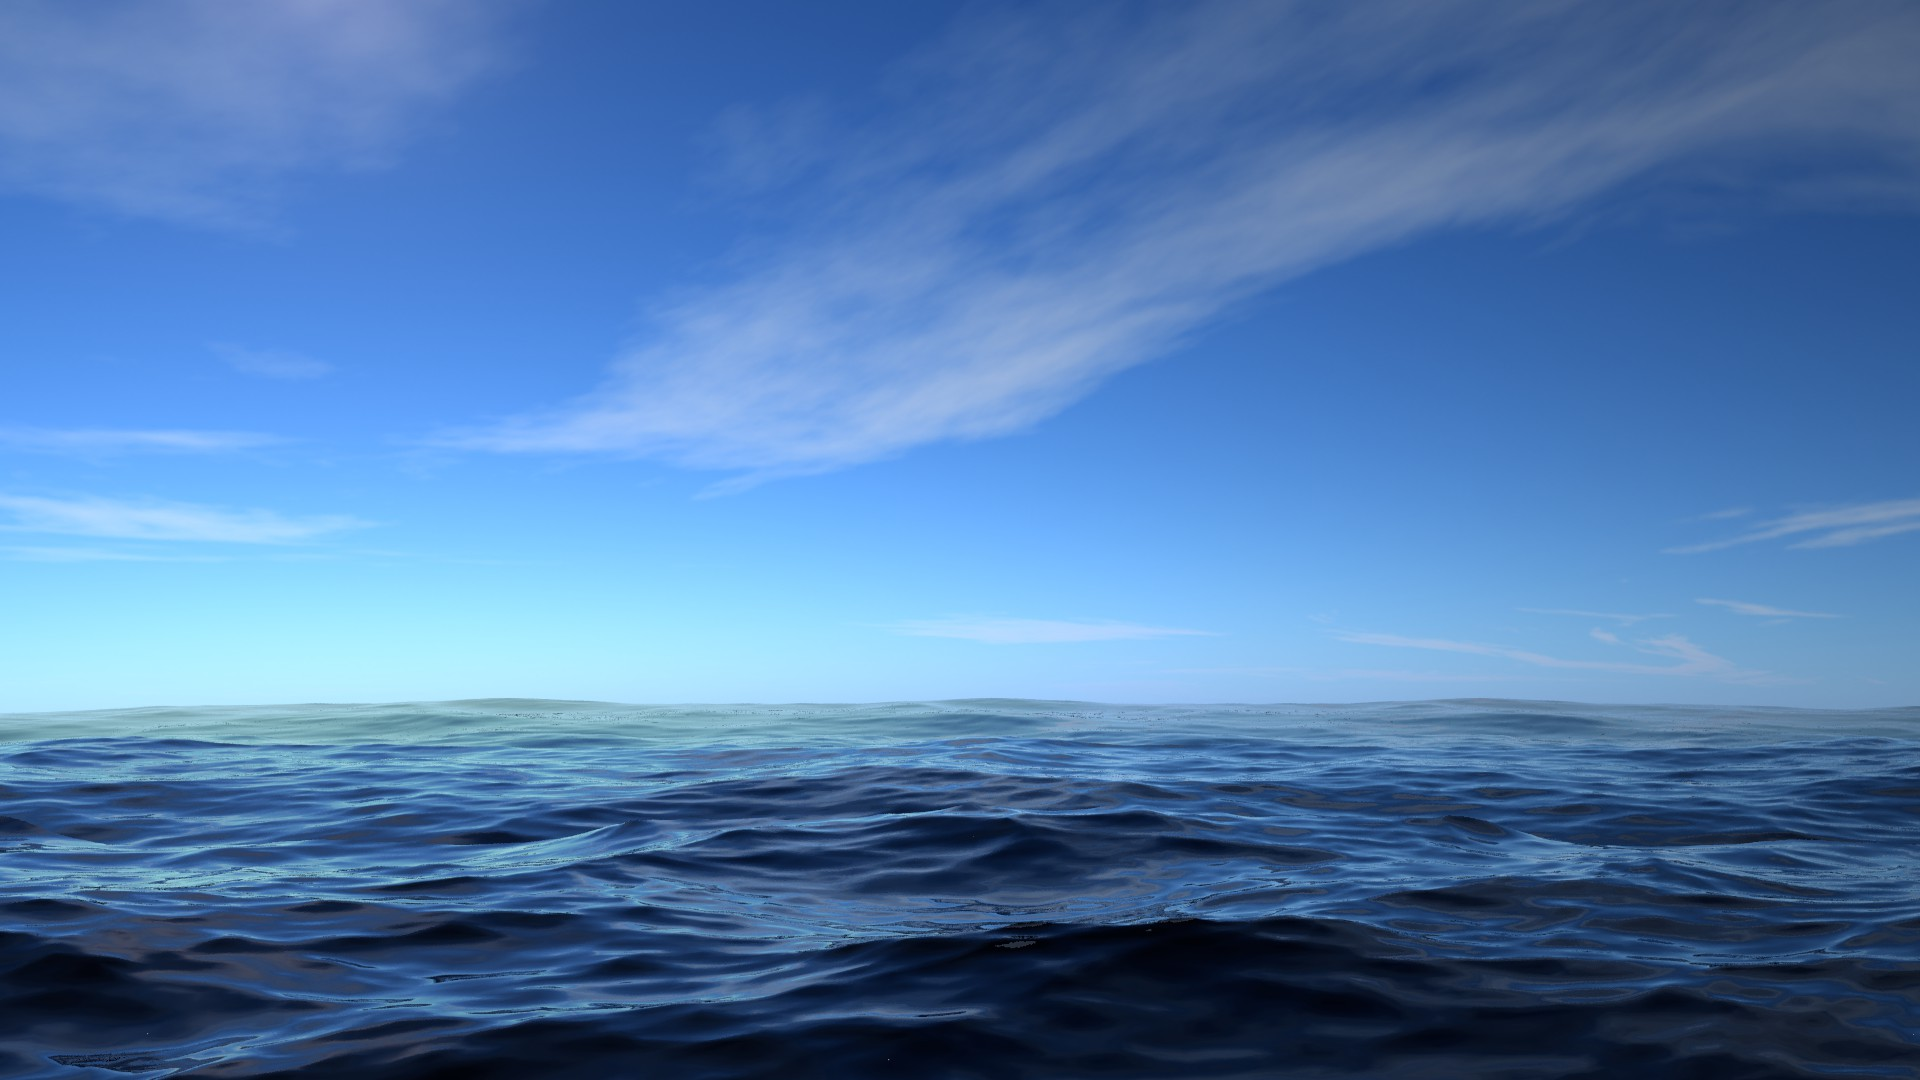 Ocean Tumblr Background Endless ocean by regus-ttefUnderwater Background Tumblr